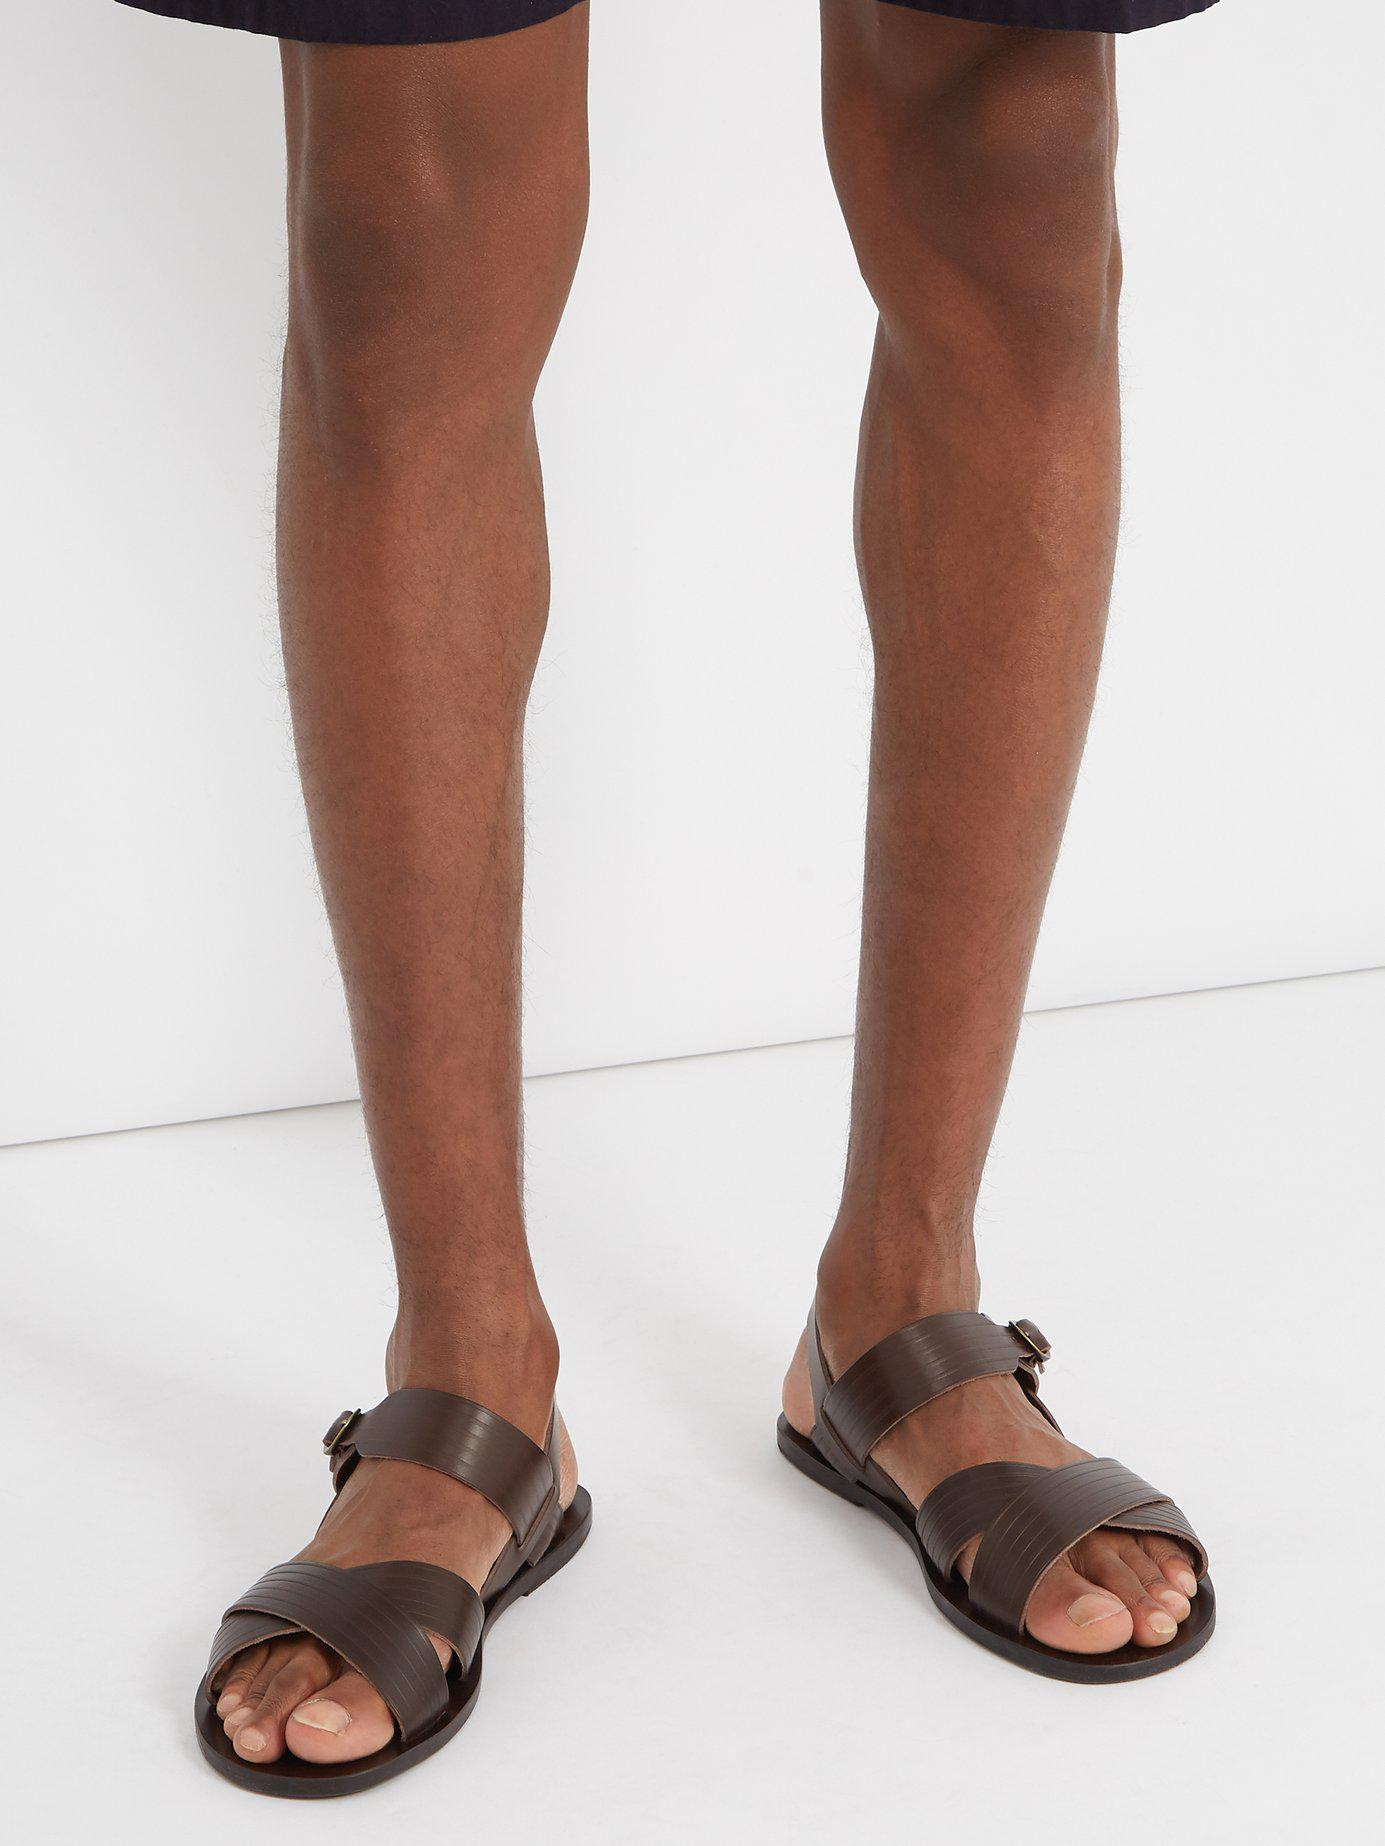 Greek Men Ancient Socrates Brown Leather For Sandals vmnO8N0w